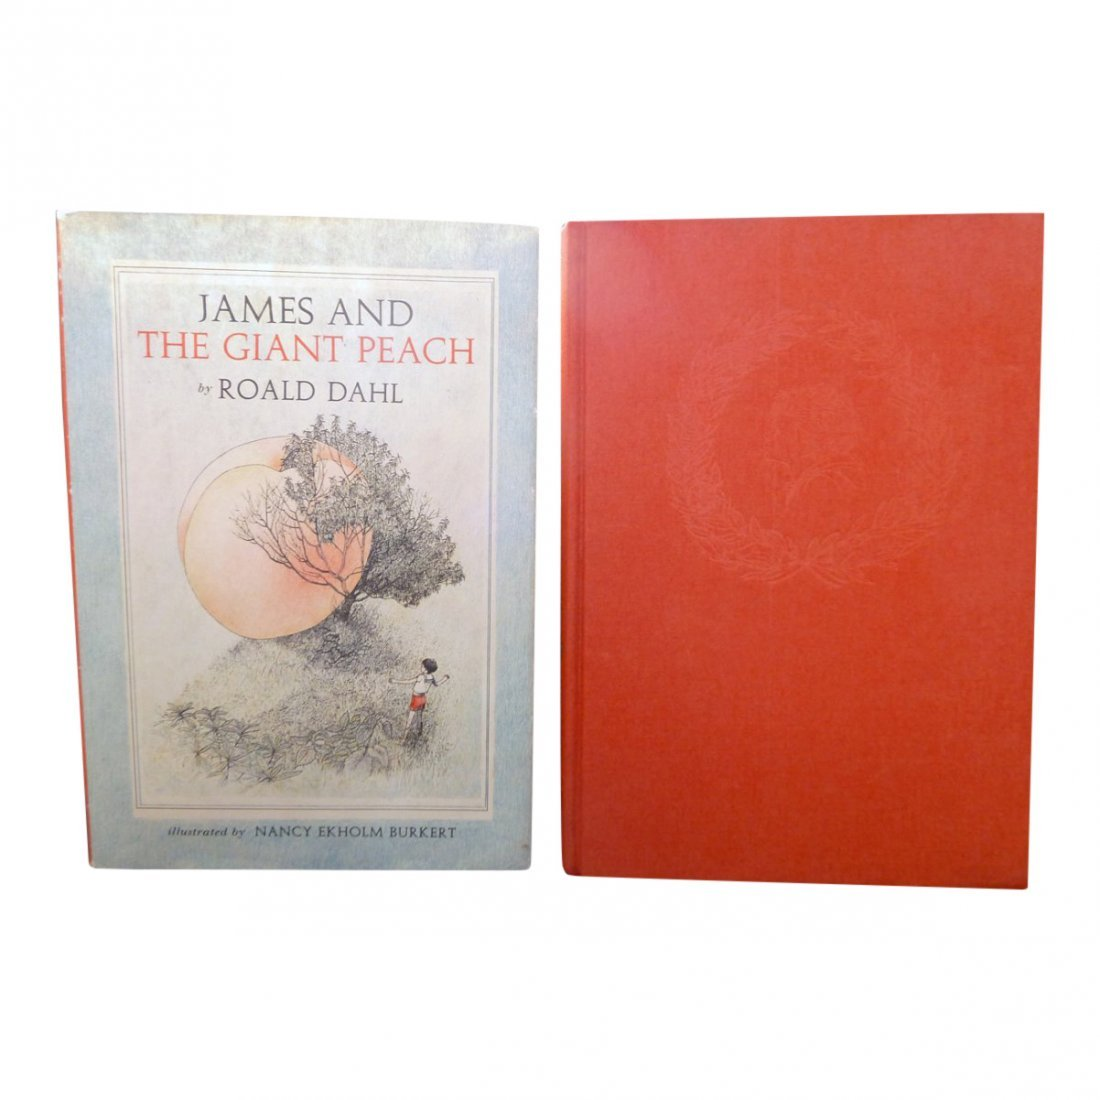 Roald Dahl: James and the Giant Peach - Signed